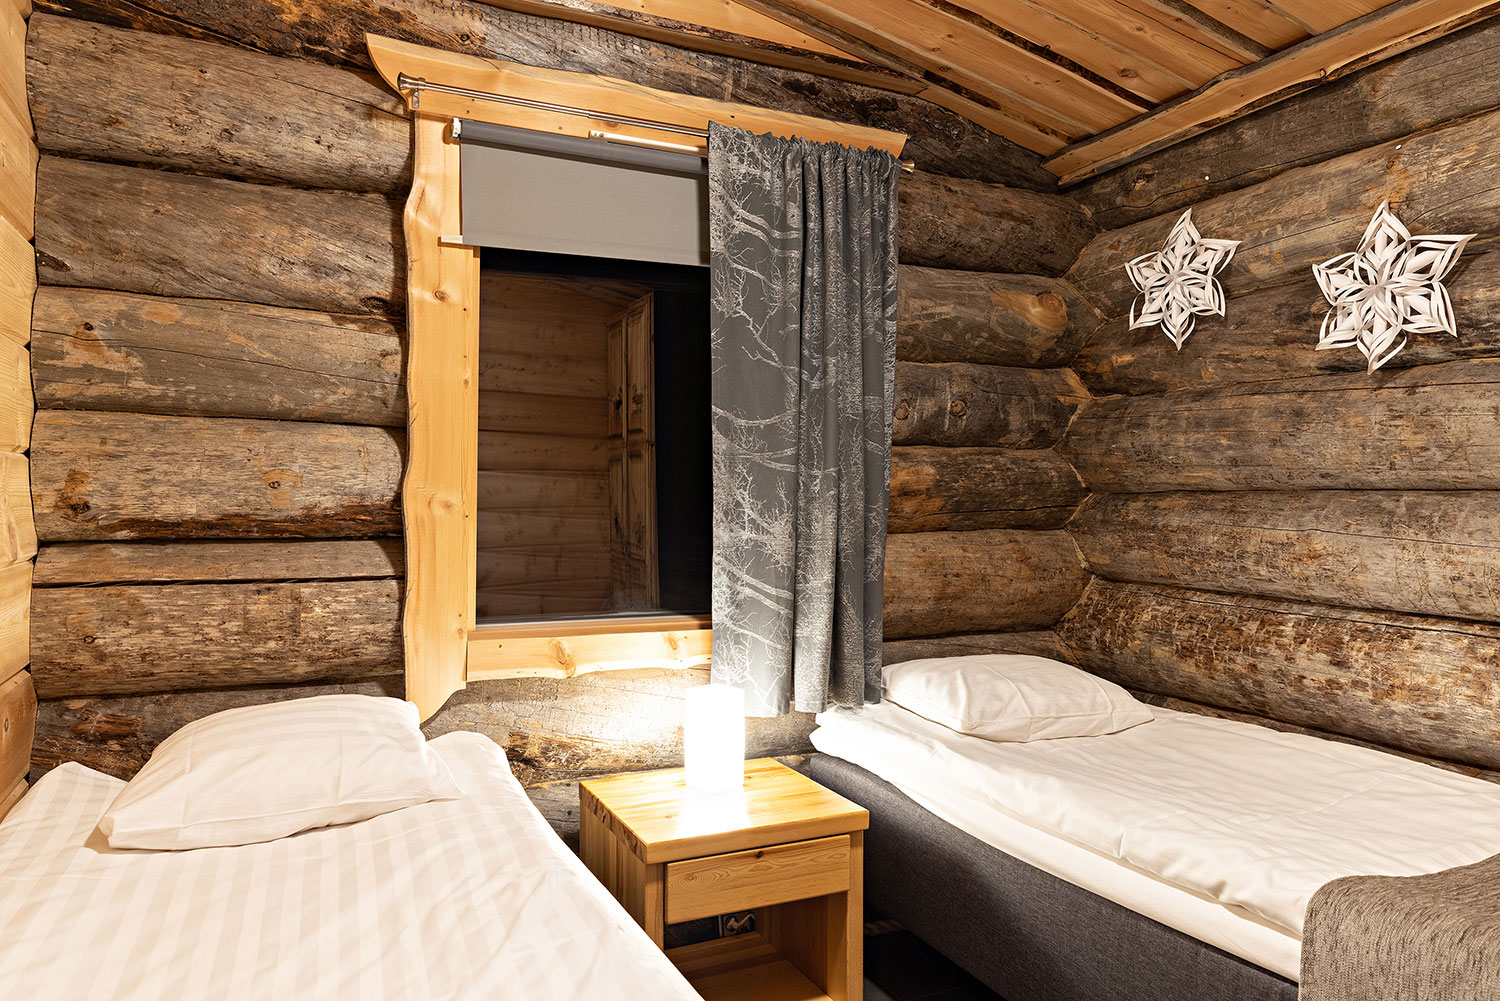 Three apartments and two cabins accommodate 20 persons altogether.